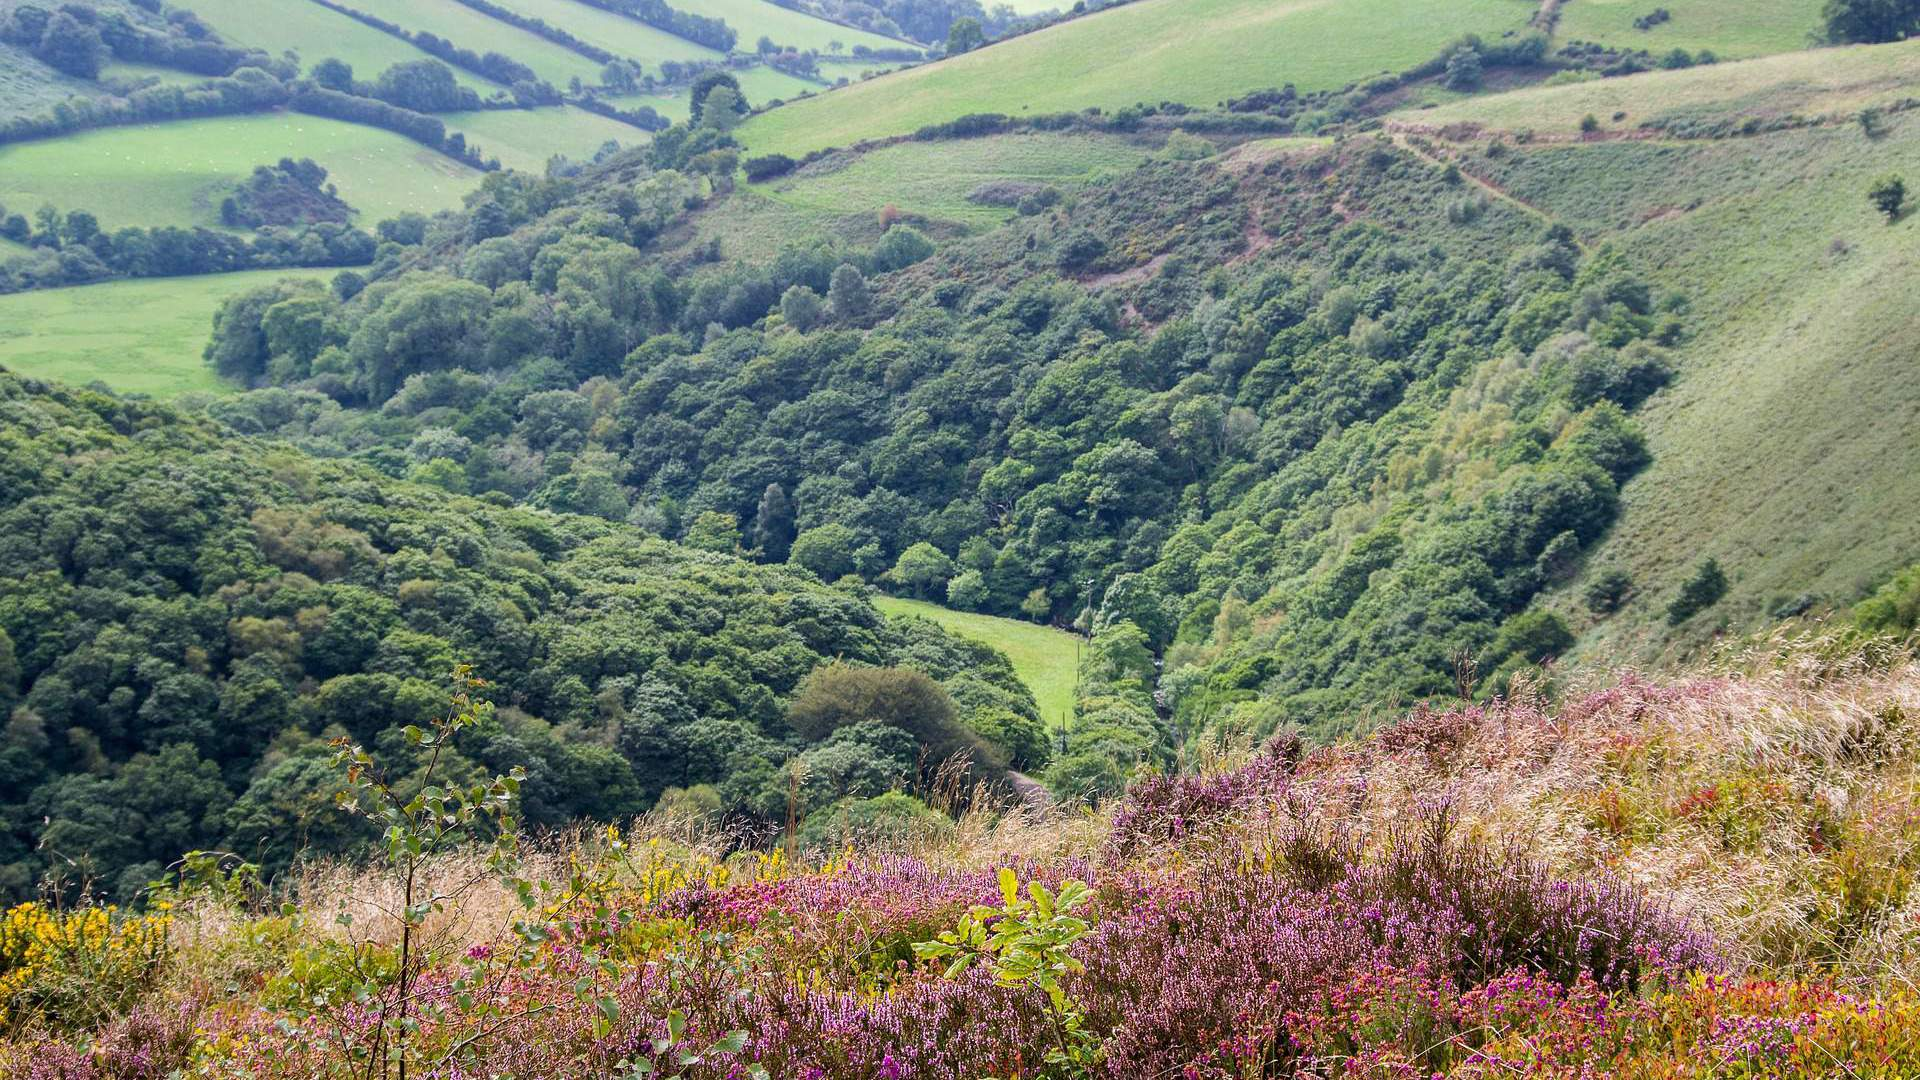 Exmoor - The Luttrell Arms Hotel